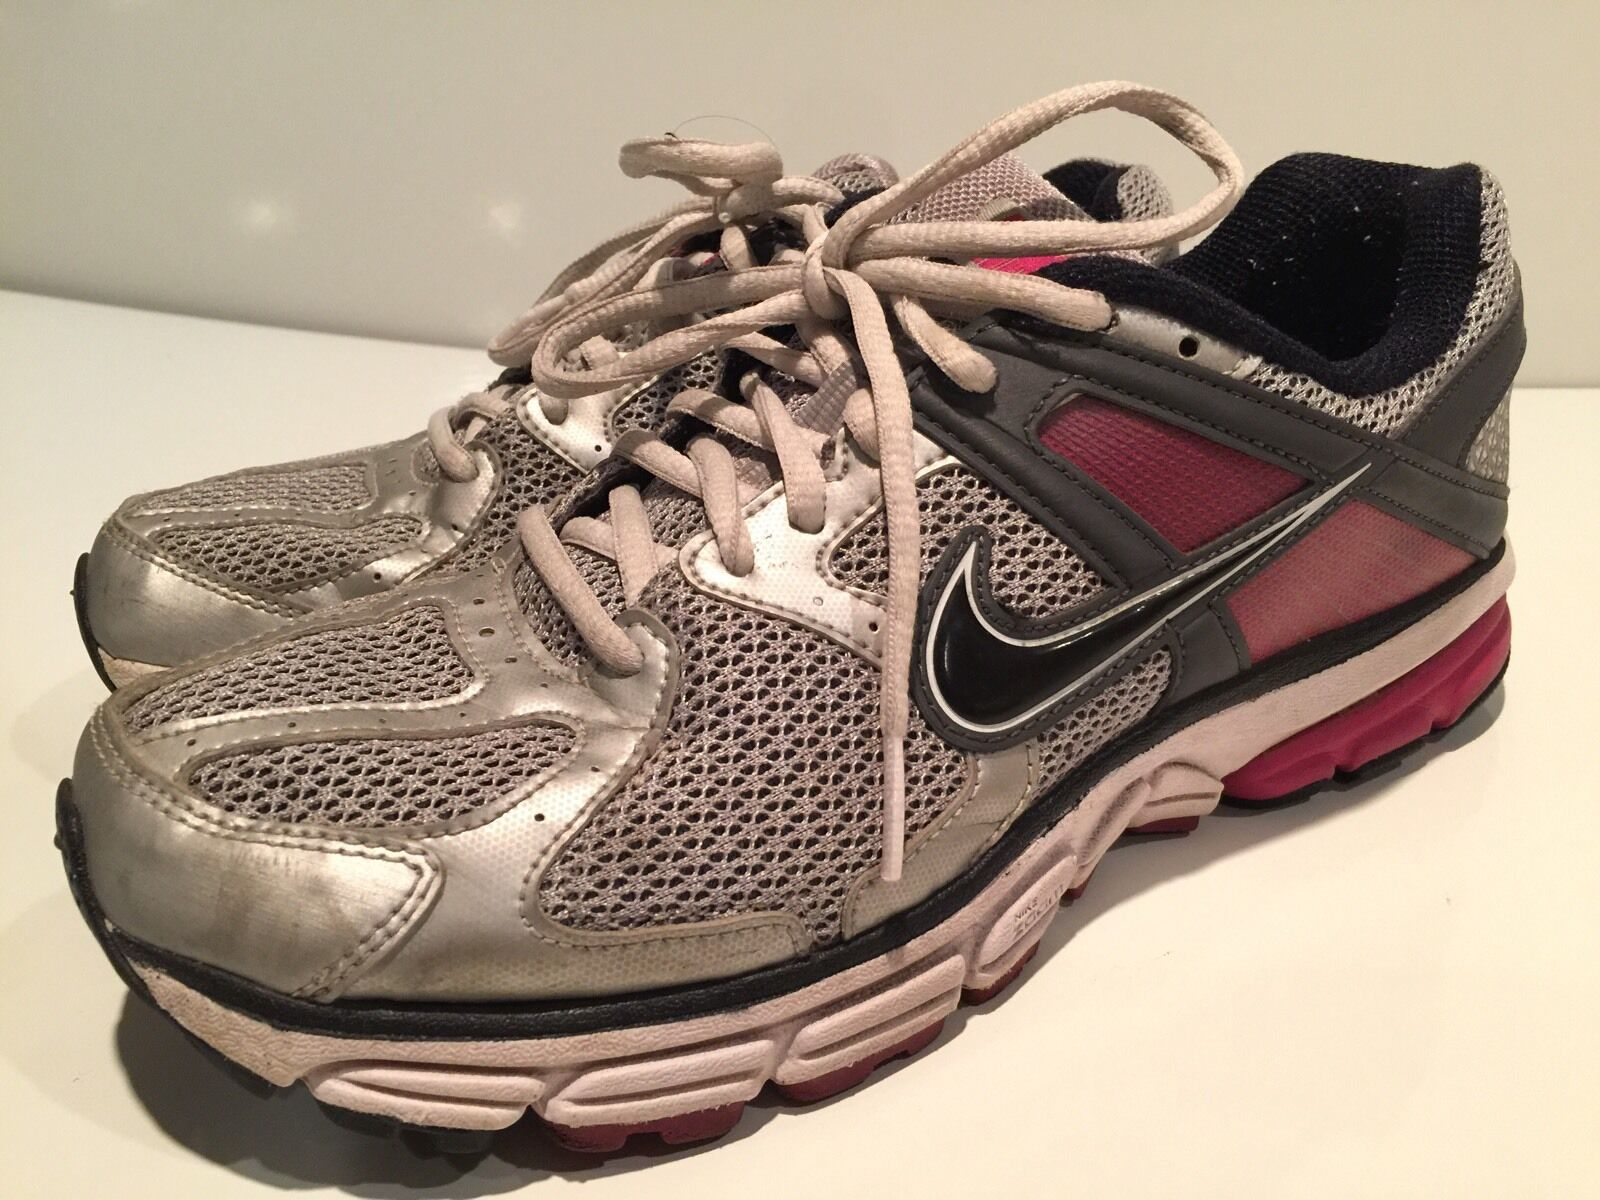 Nike Structure 14 Women's Athletic Running Shoes Size 8.5 M